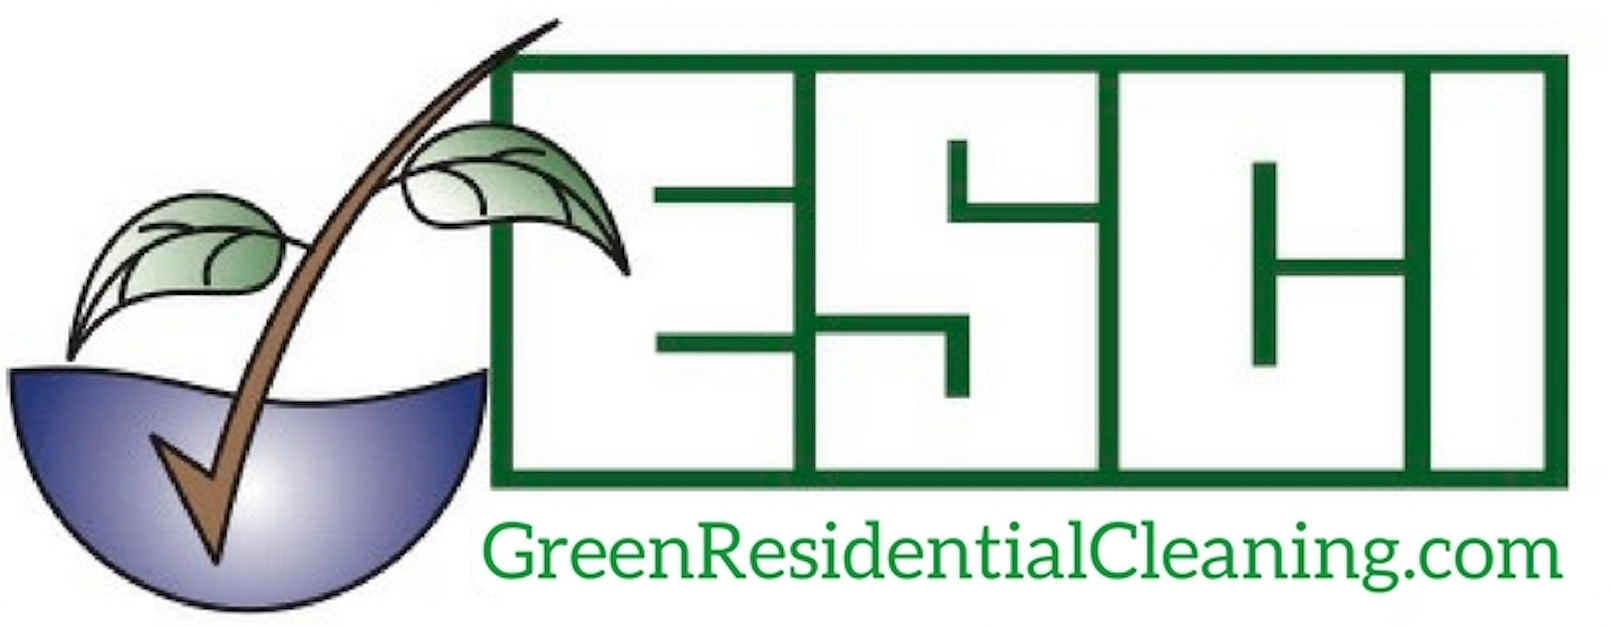 Green Residential Cleaning